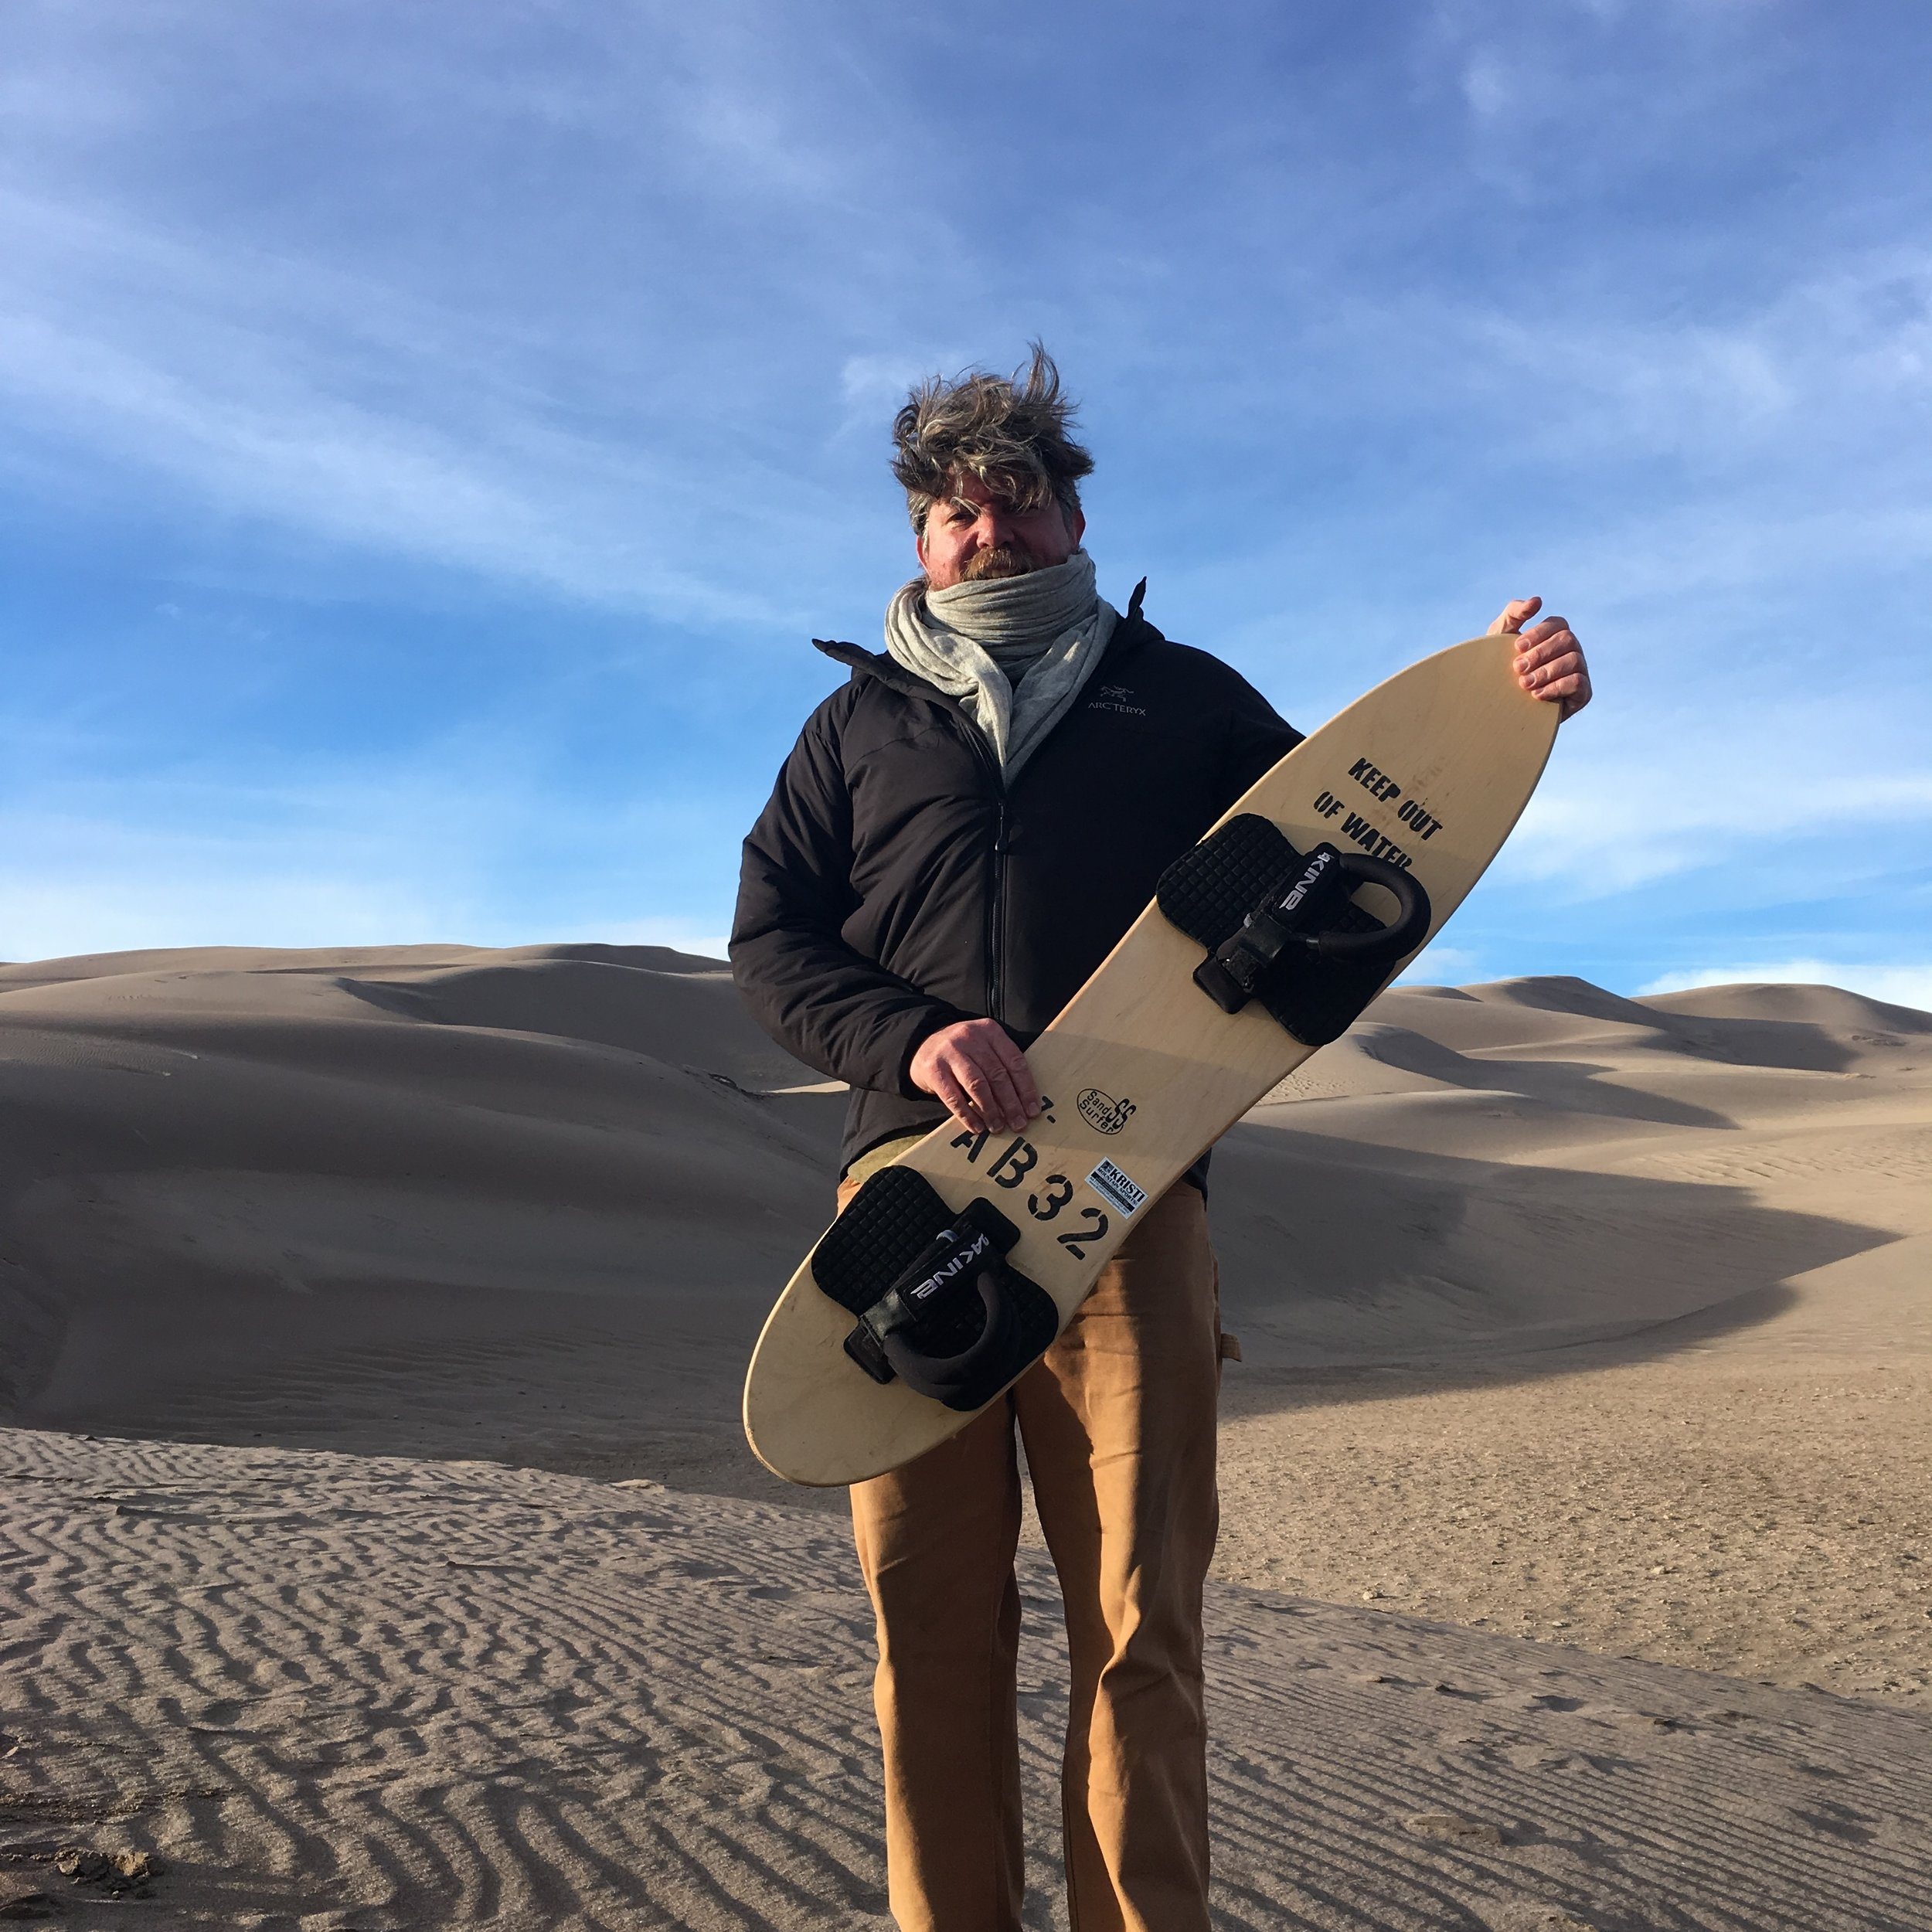 The author (Ted) posing with a sandboard